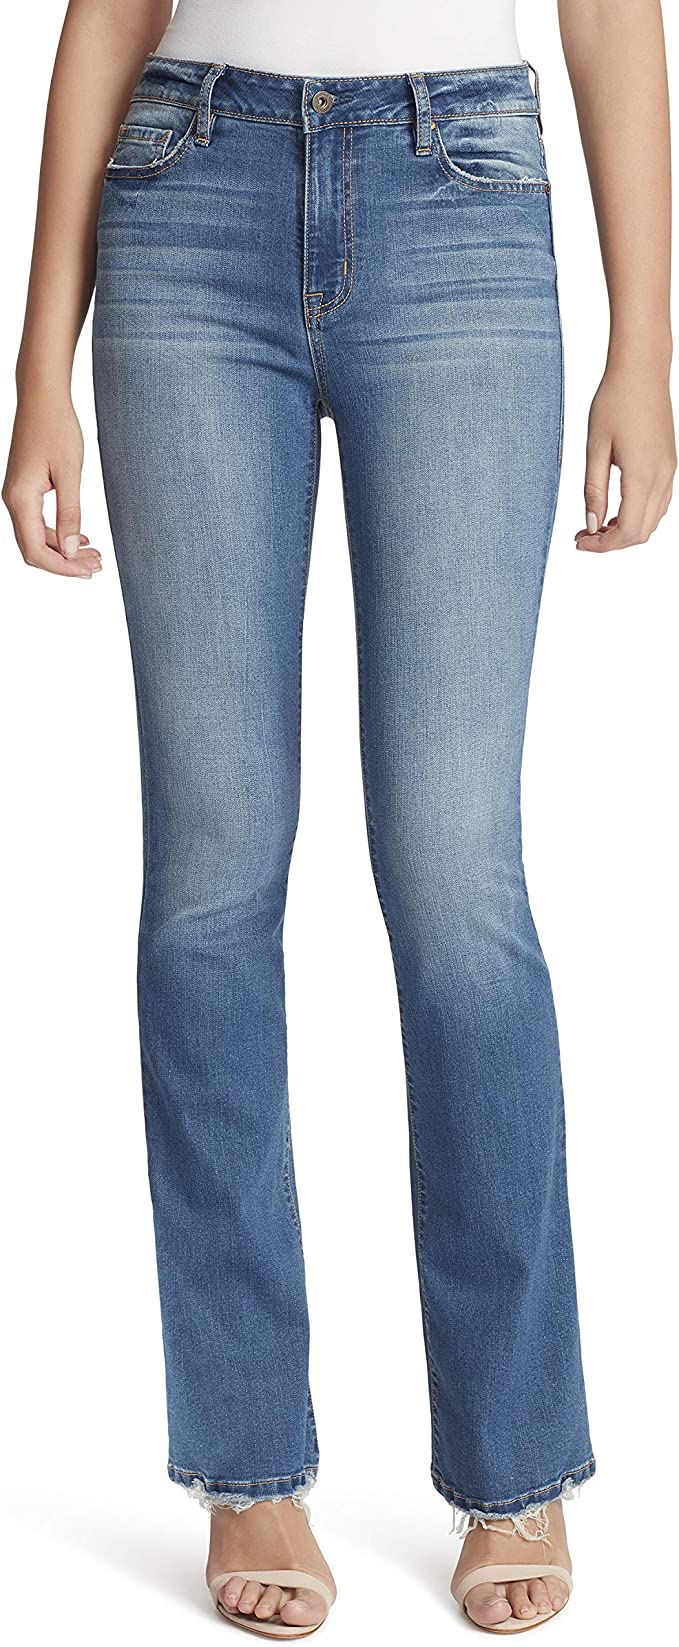 Jessica Simpson Women S Truly Yours Boot Cut Jean At Amazon Women S Jeans Store